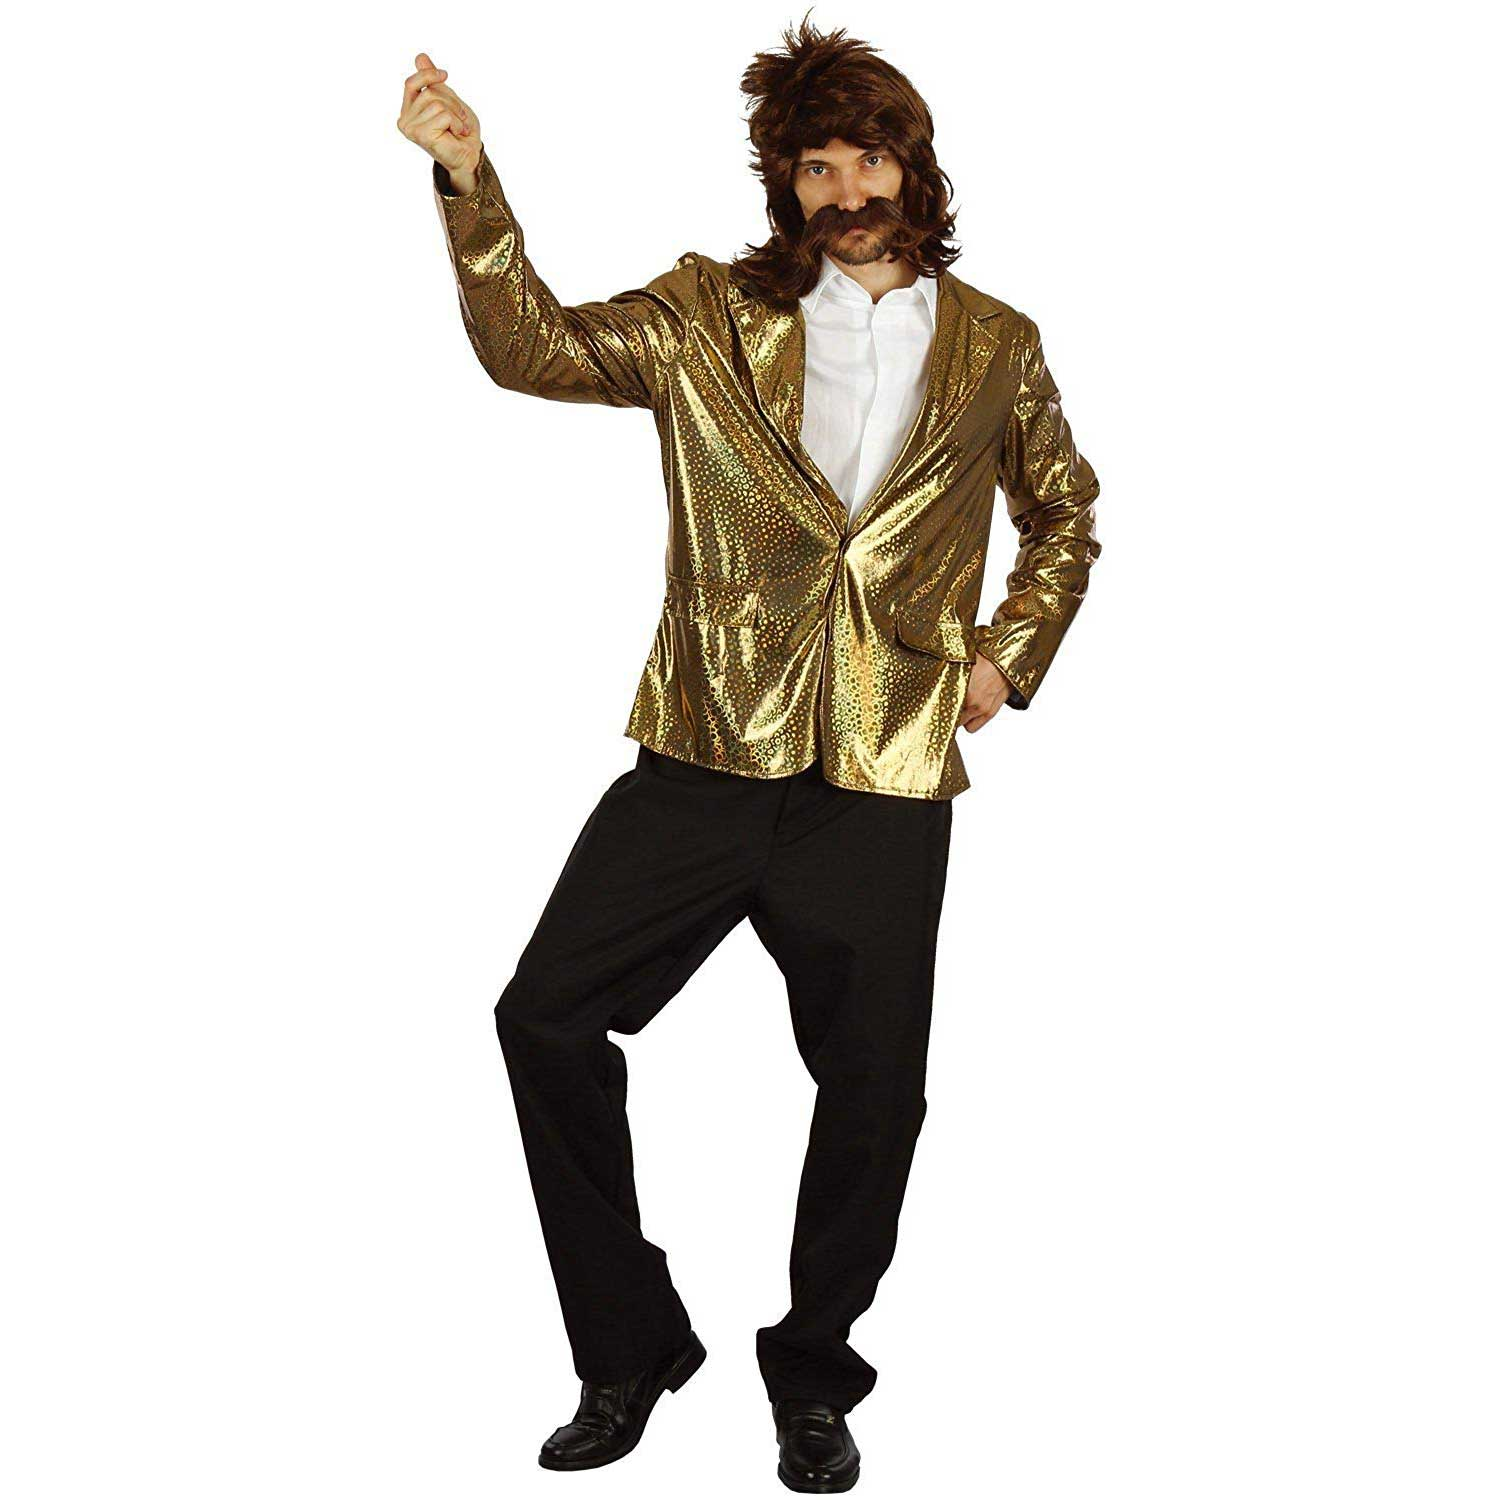 Crazy Halloween Decorations: Crazy Halloween Costumes Disco Golden Jacket